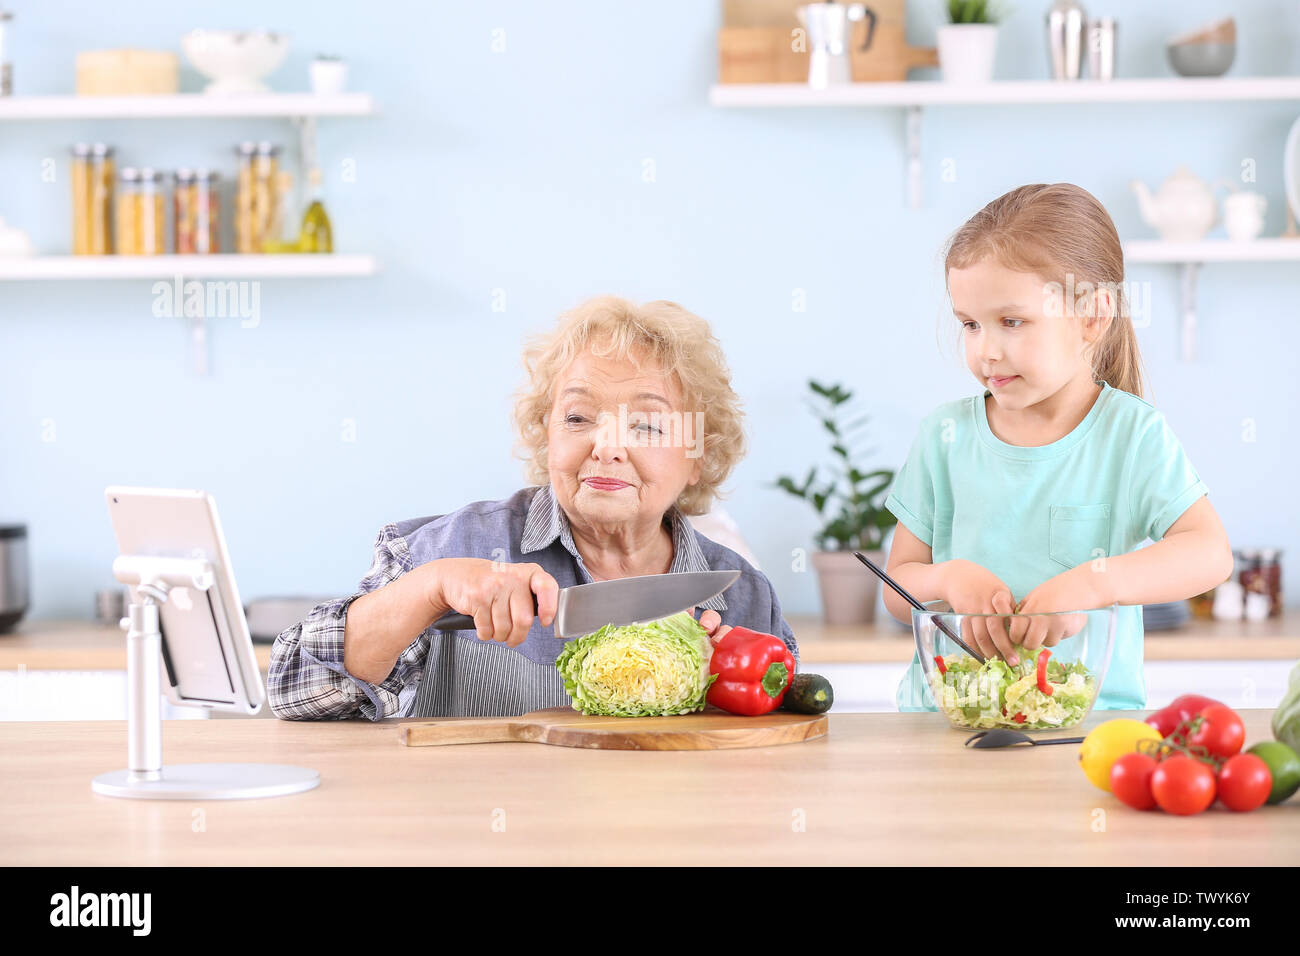 Cute little girl with grandmother preparing vegetable salad in kitchen - Stock Image